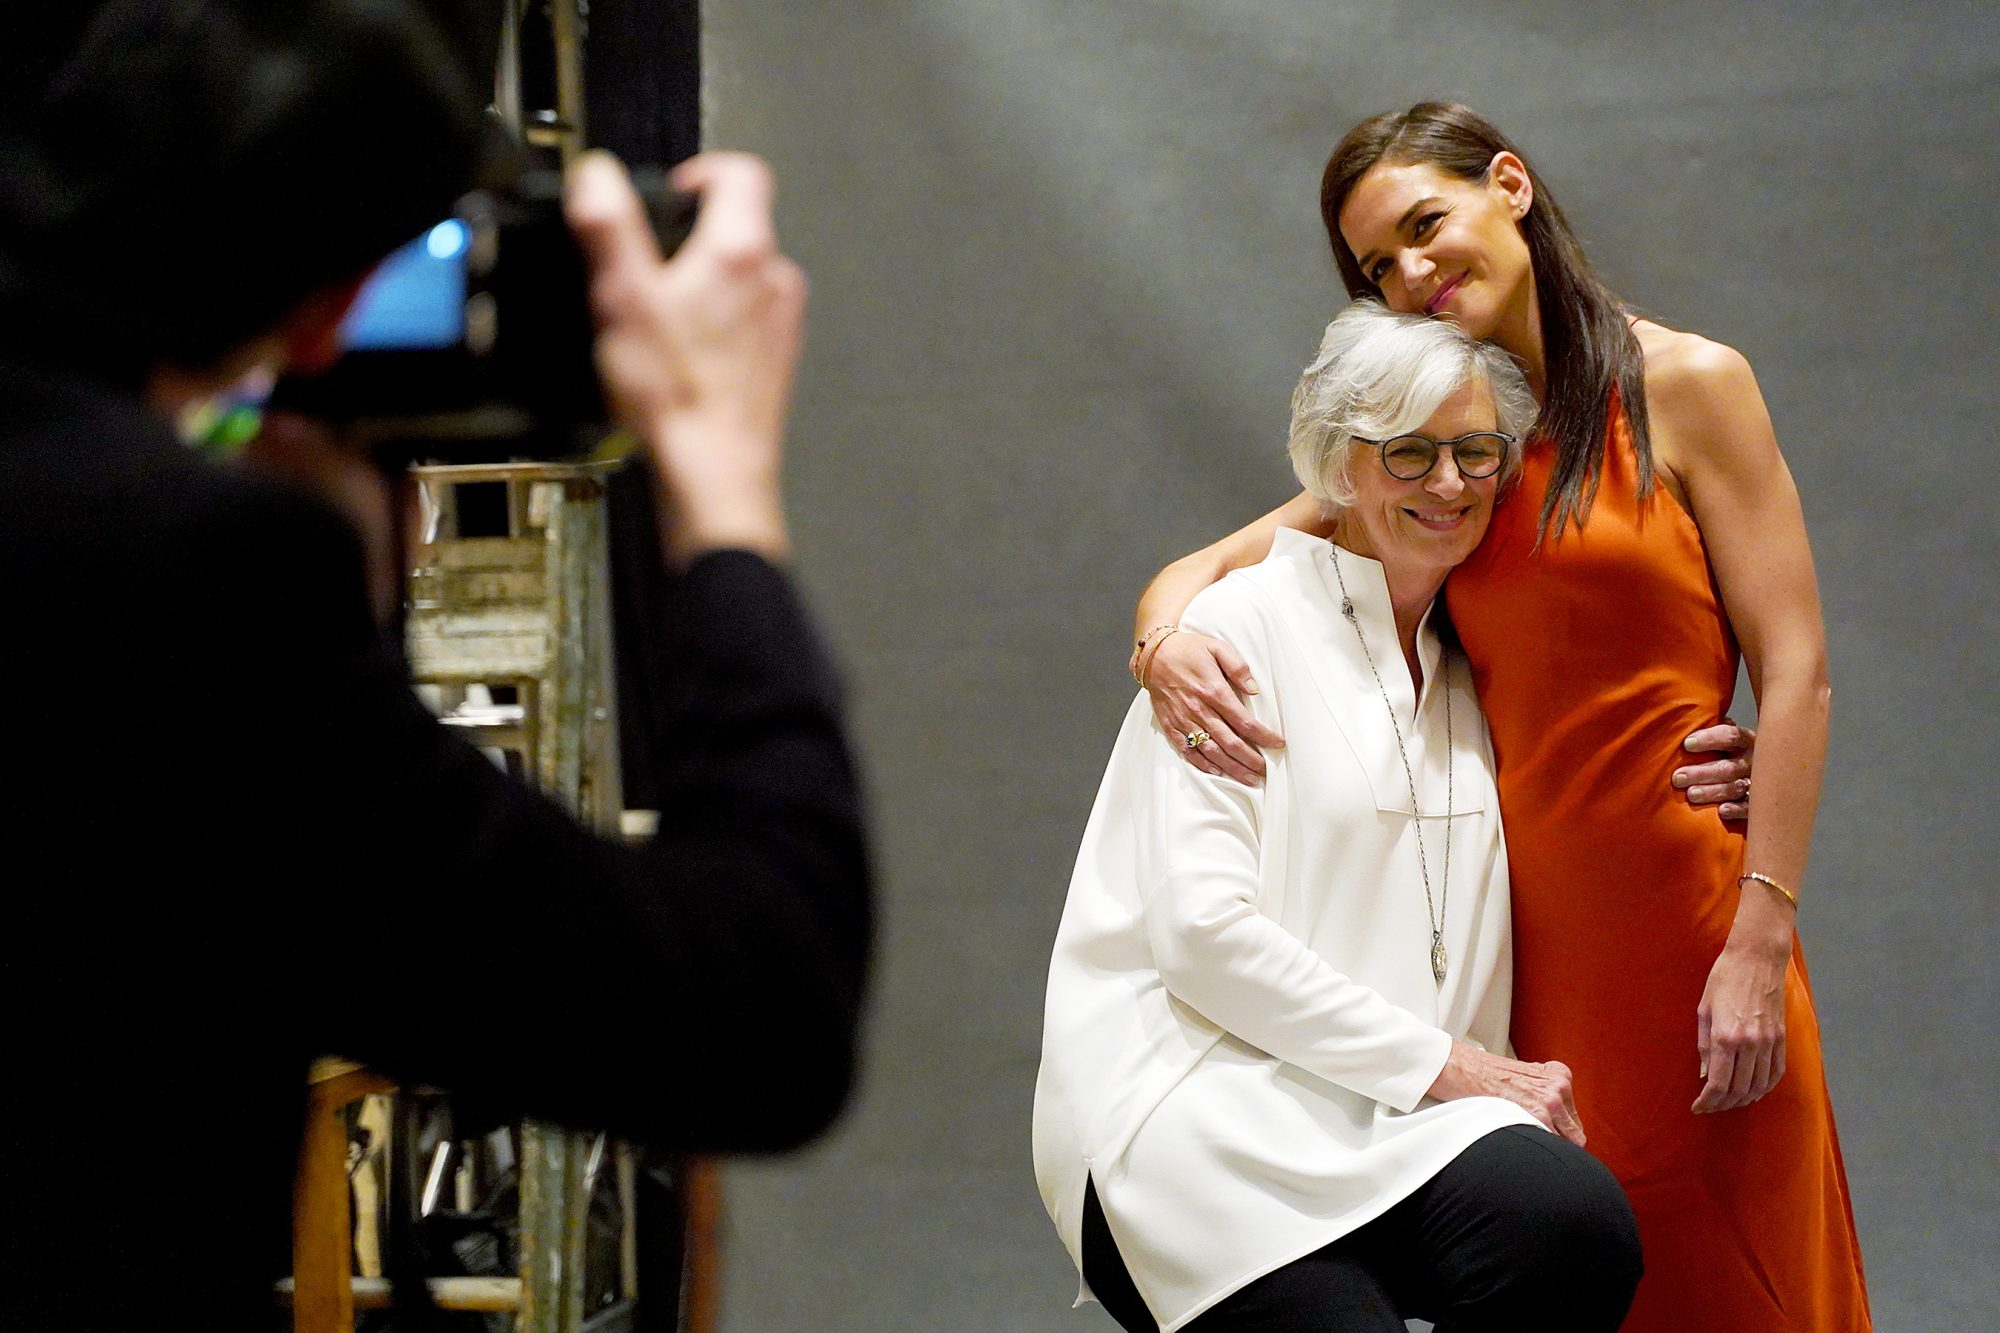 Kathleen A. Stothers-Holmes and Katie Holmes